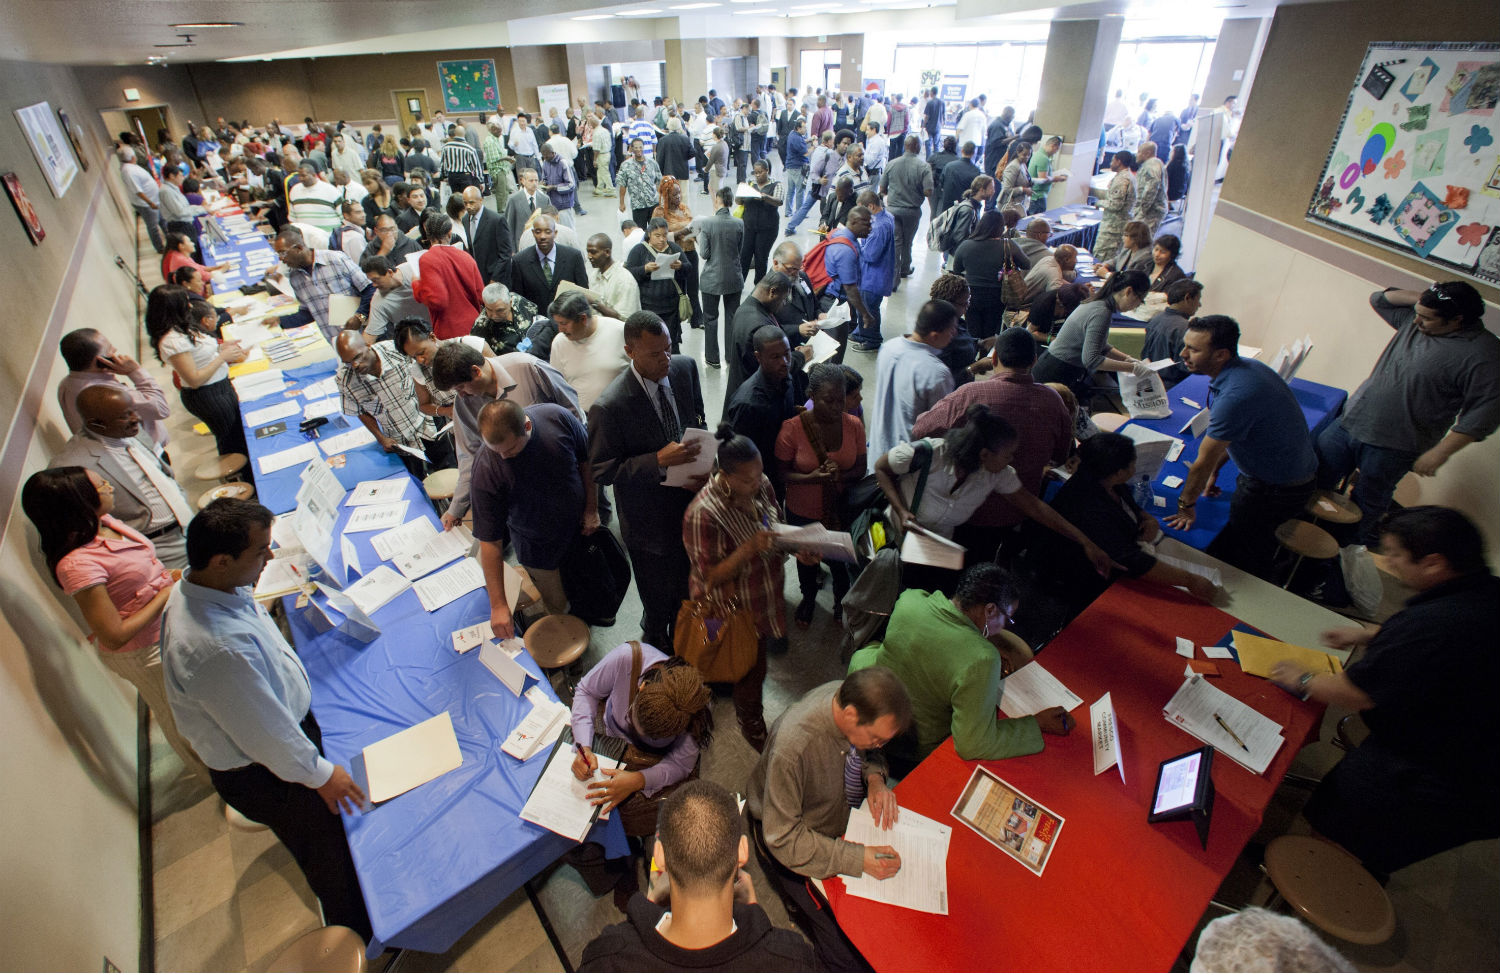 why are employers checking job applicants credit histories the job seekers gather at a career fair in los angeles ap photo damian dovarganes